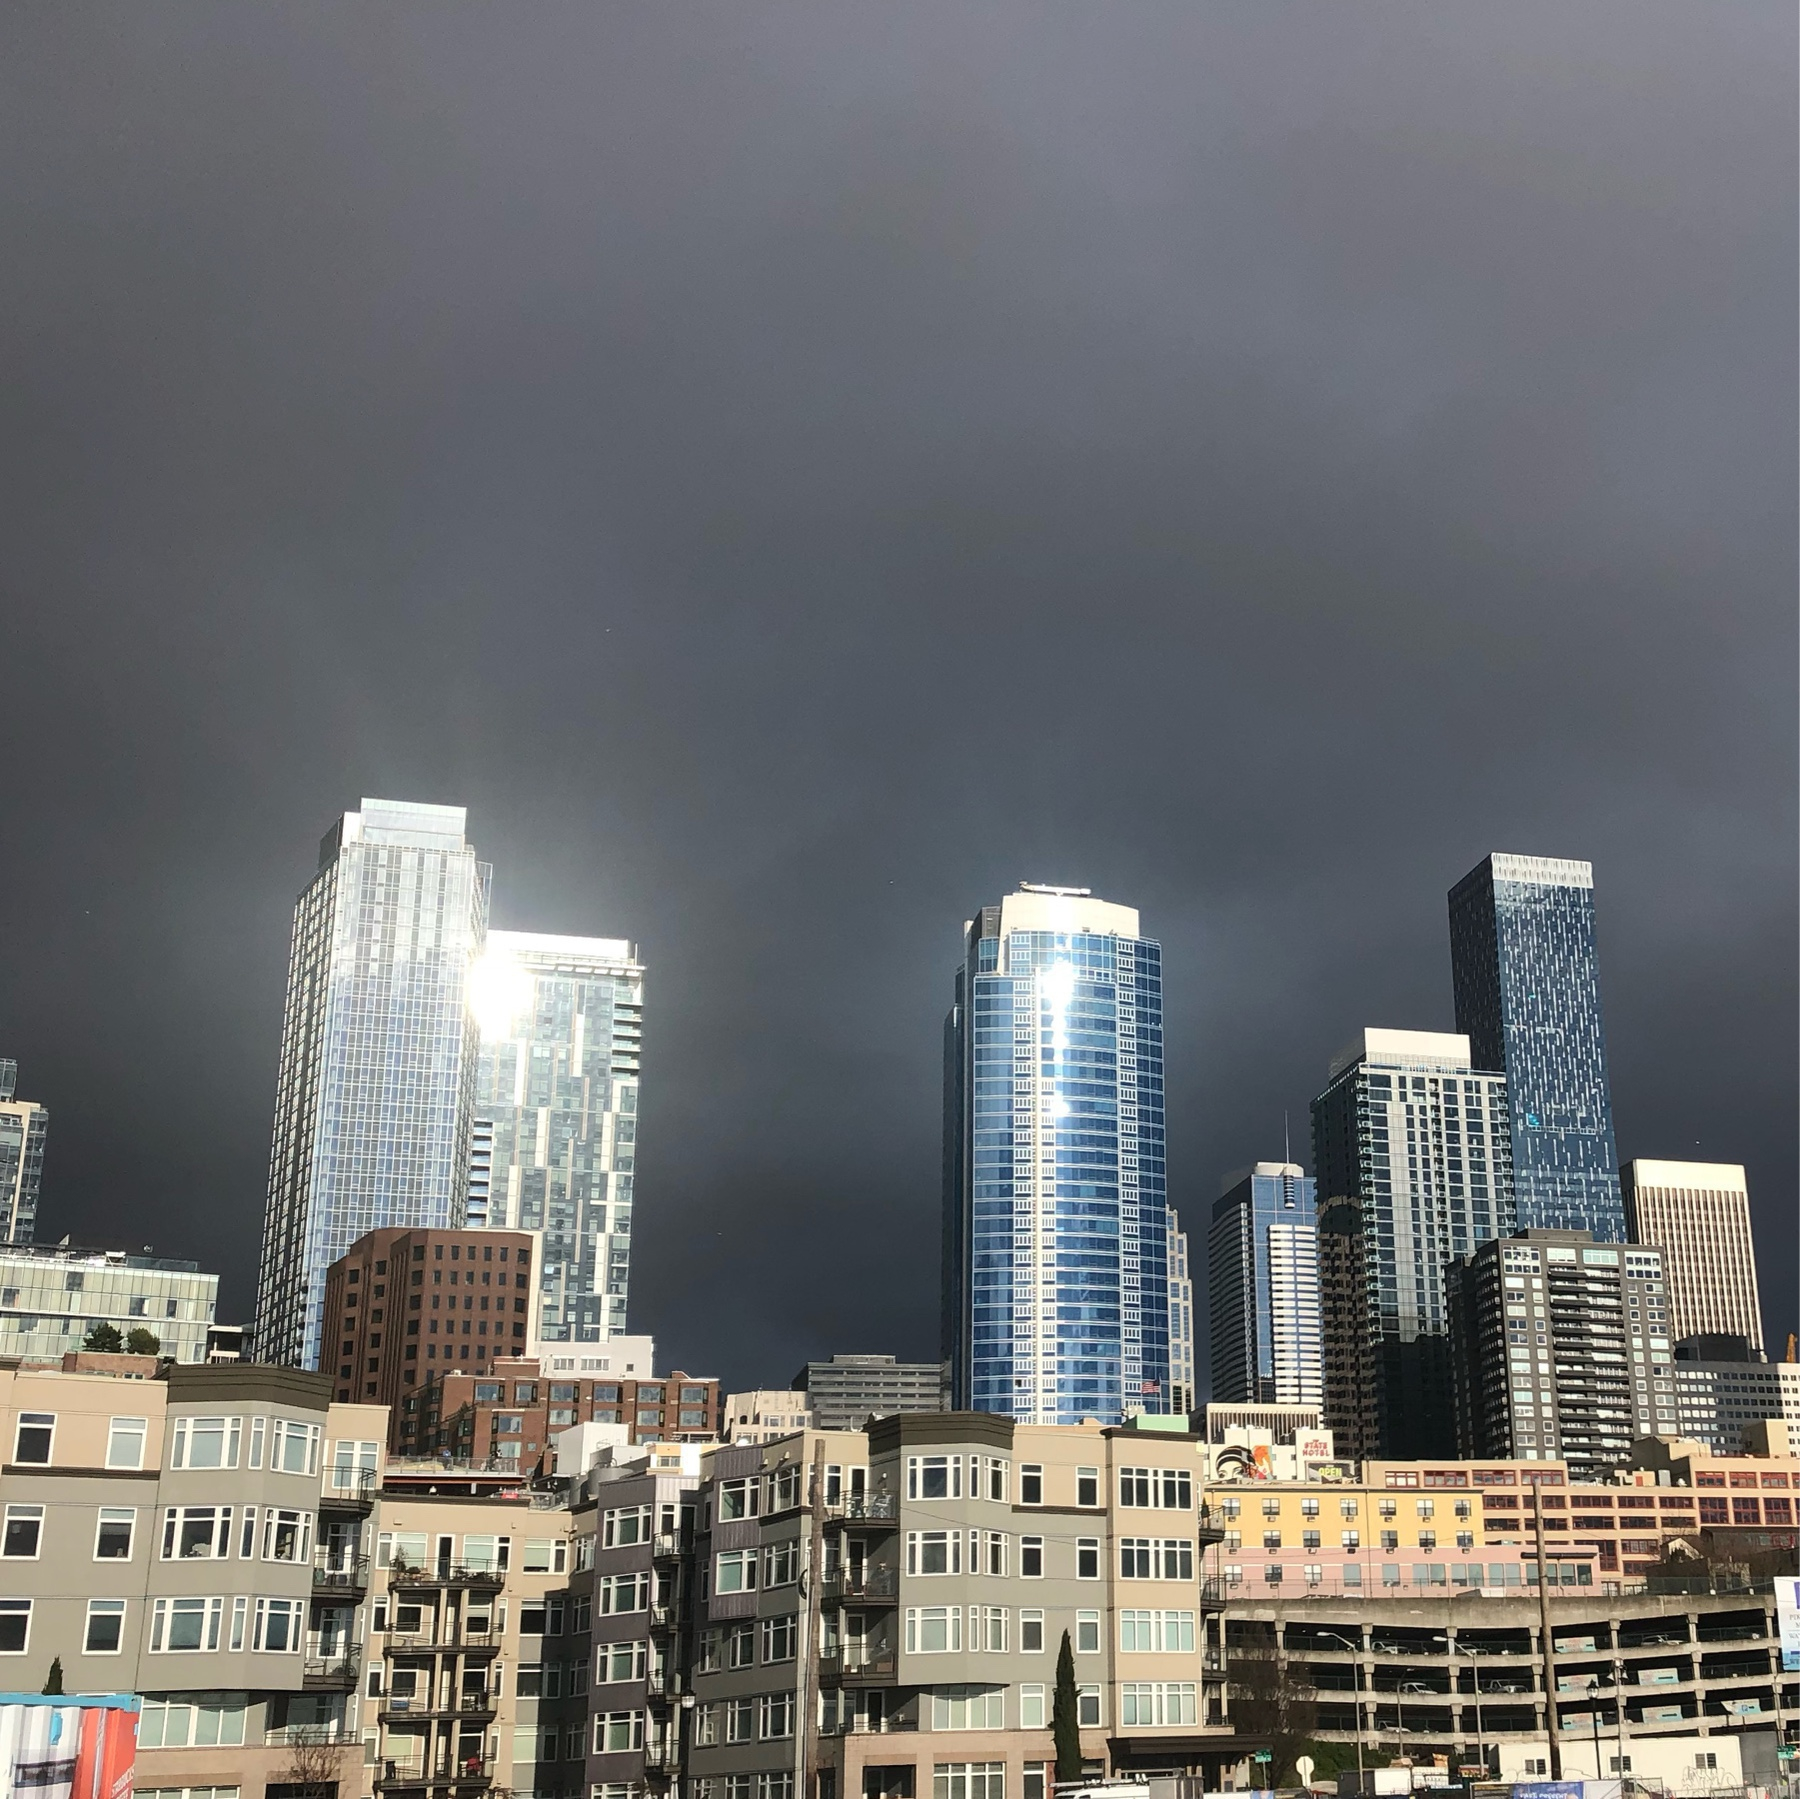 Skyscrapers reflect bright sunlight against a bank of dark and impenetrable clouds